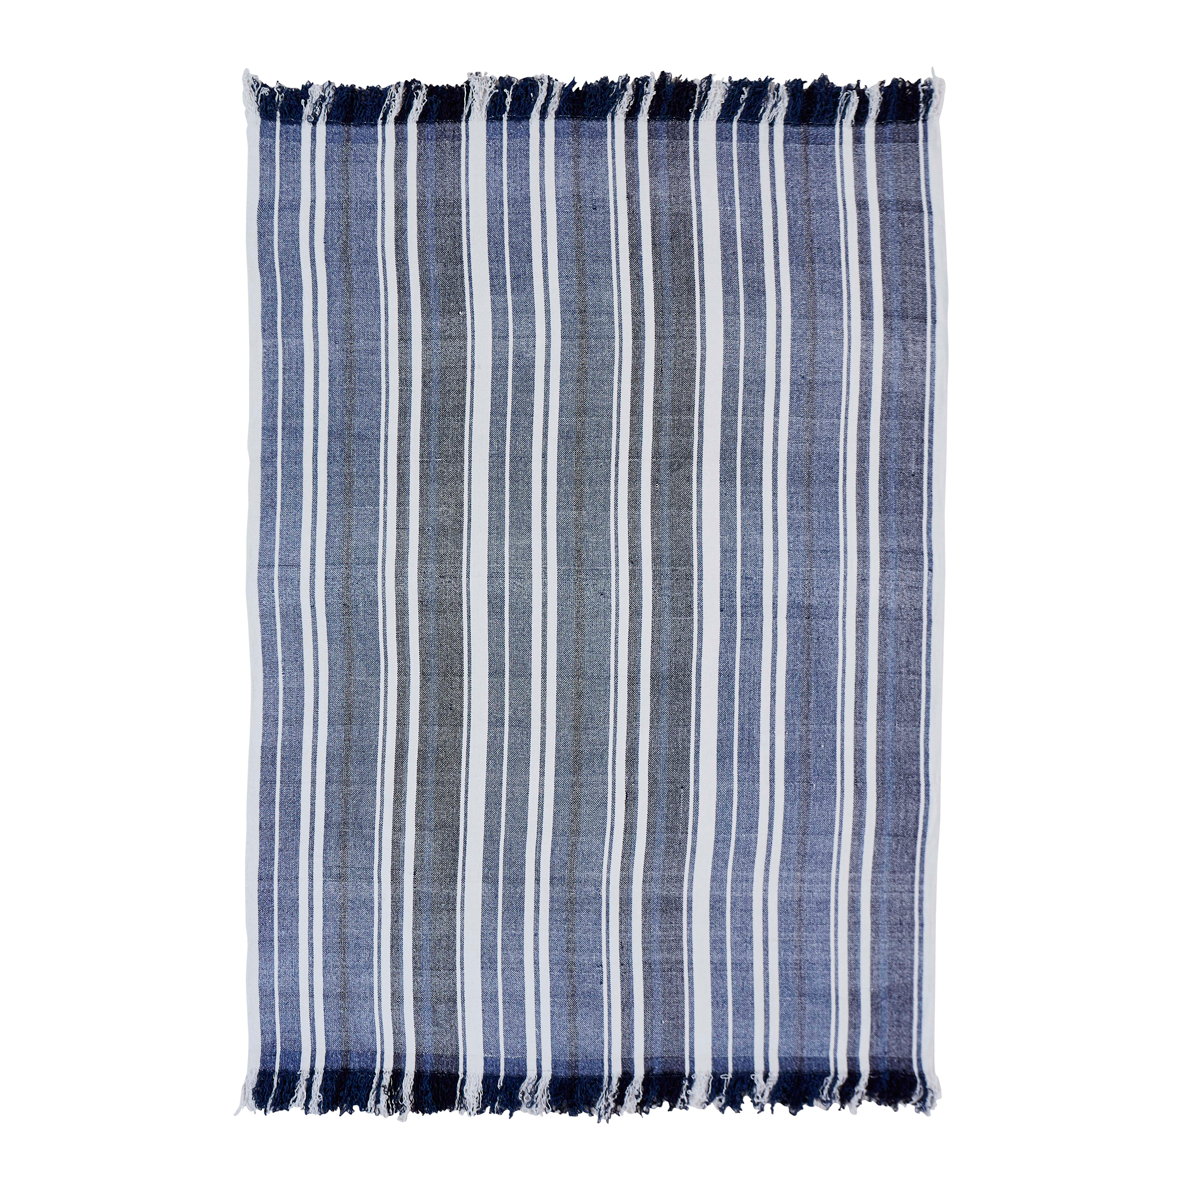 Huron Chambray Stripe Woven Throw